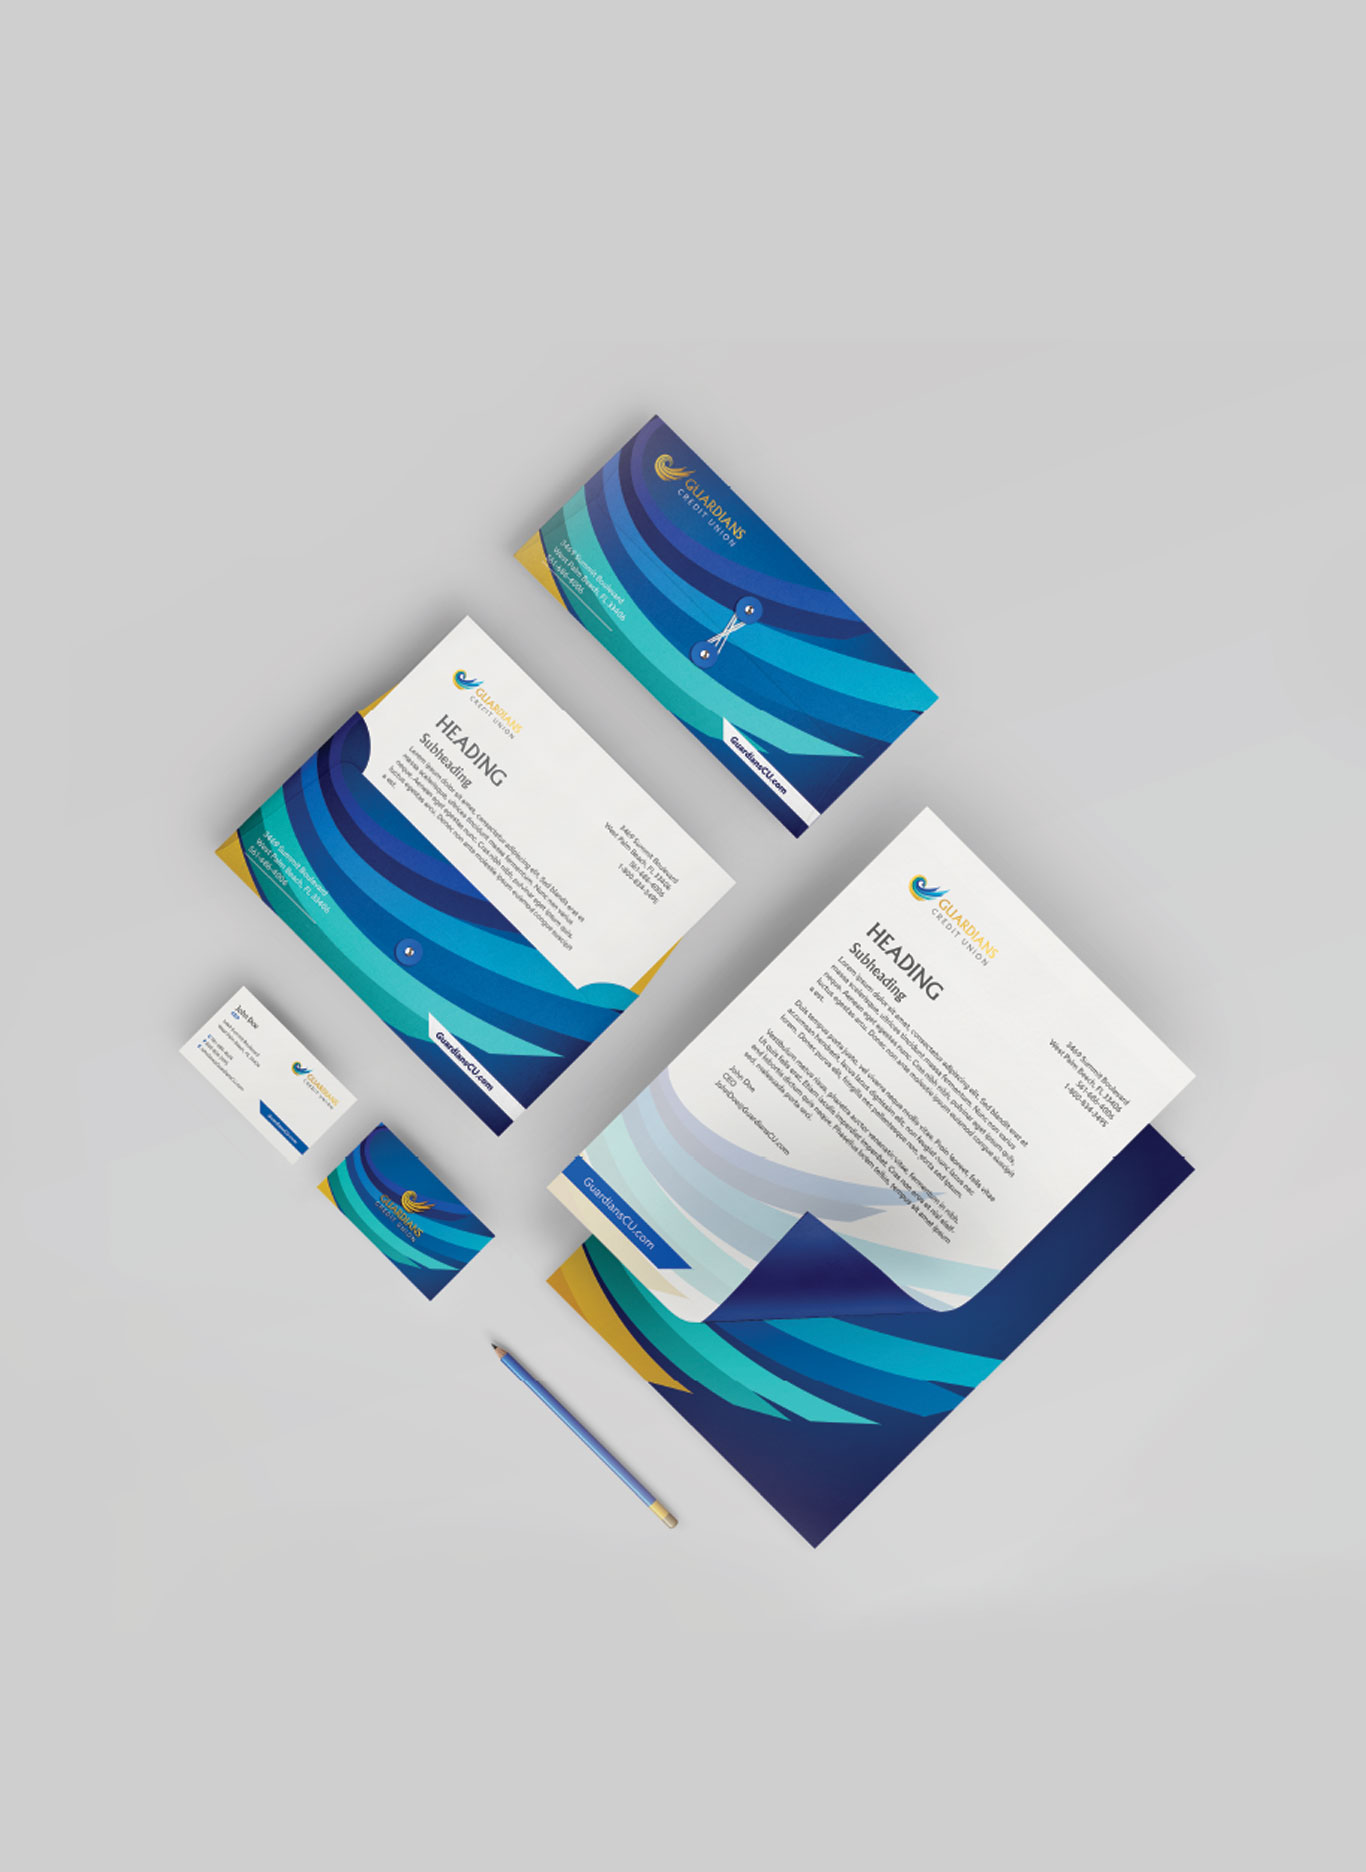 Stationary and other corporate materials branded to Guardians Credit Union.